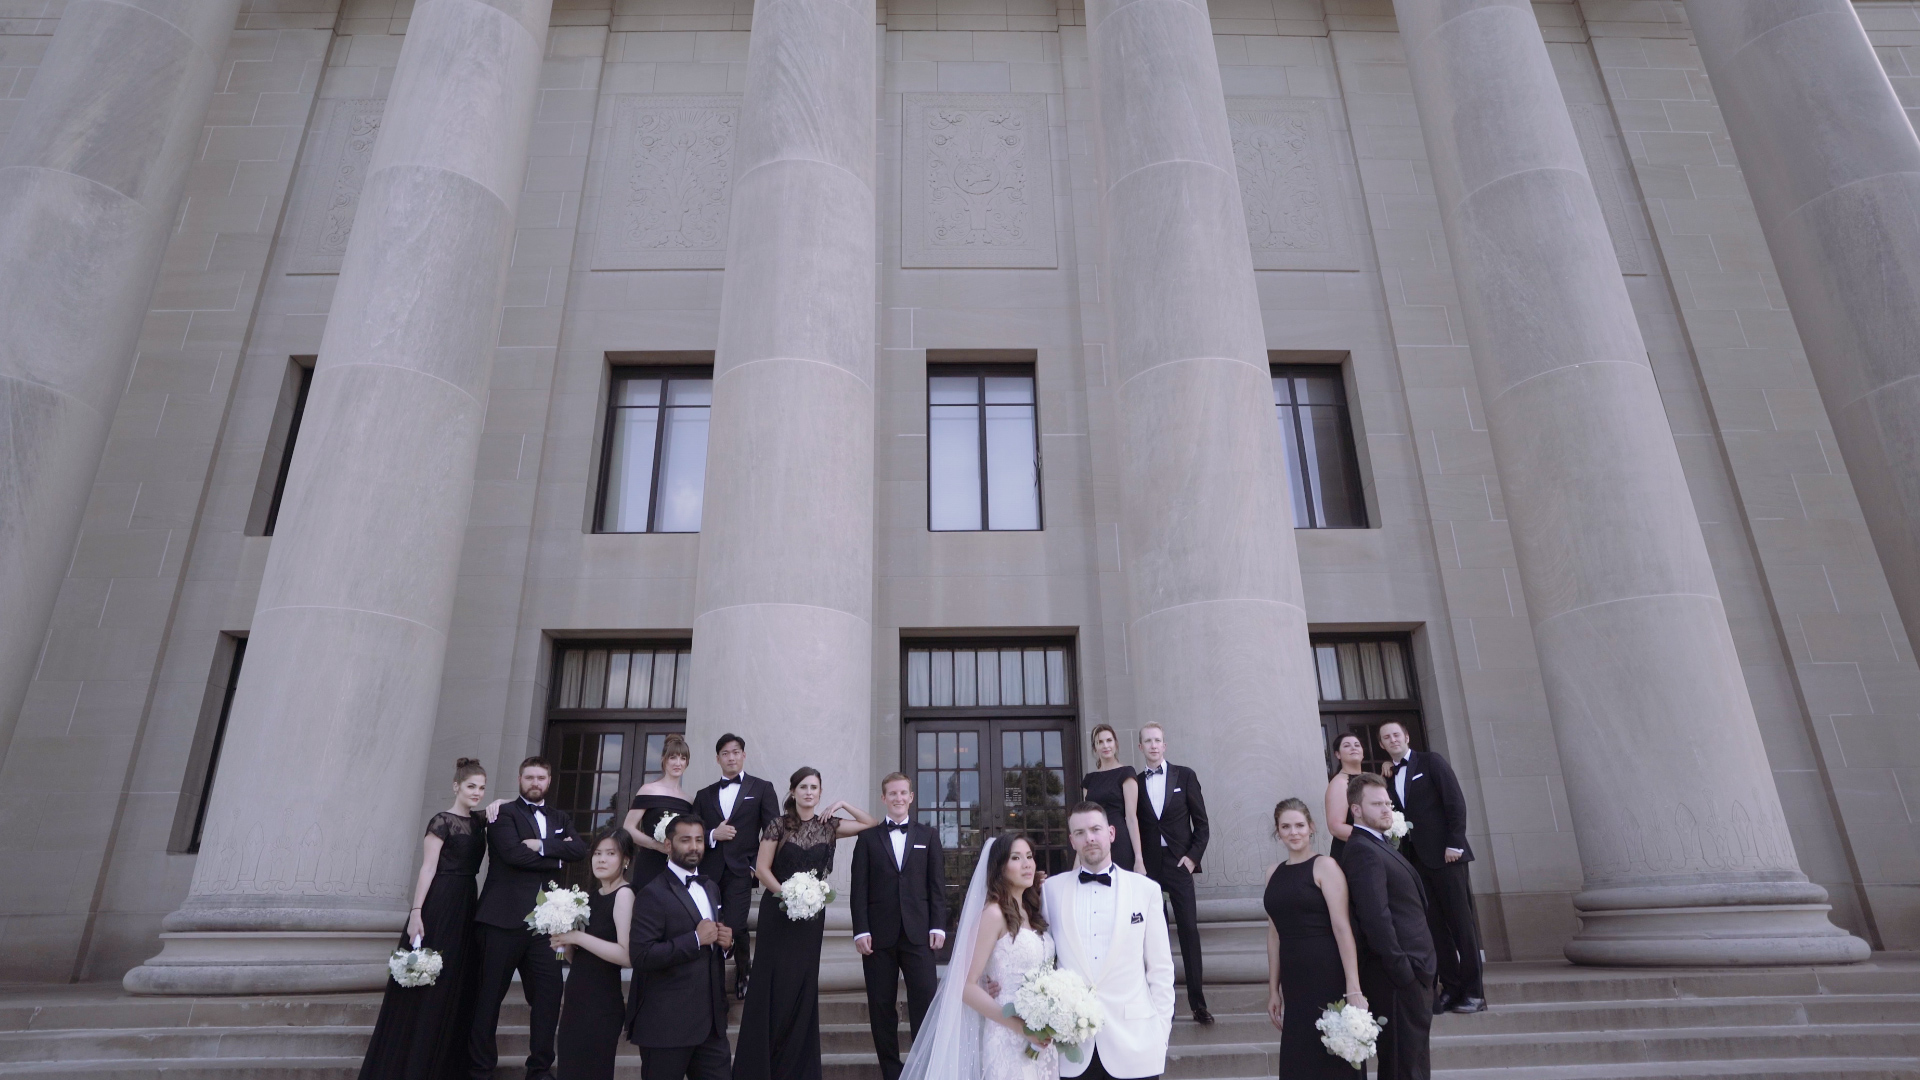 Nelson-Atkins Museum Of Art wedding photo